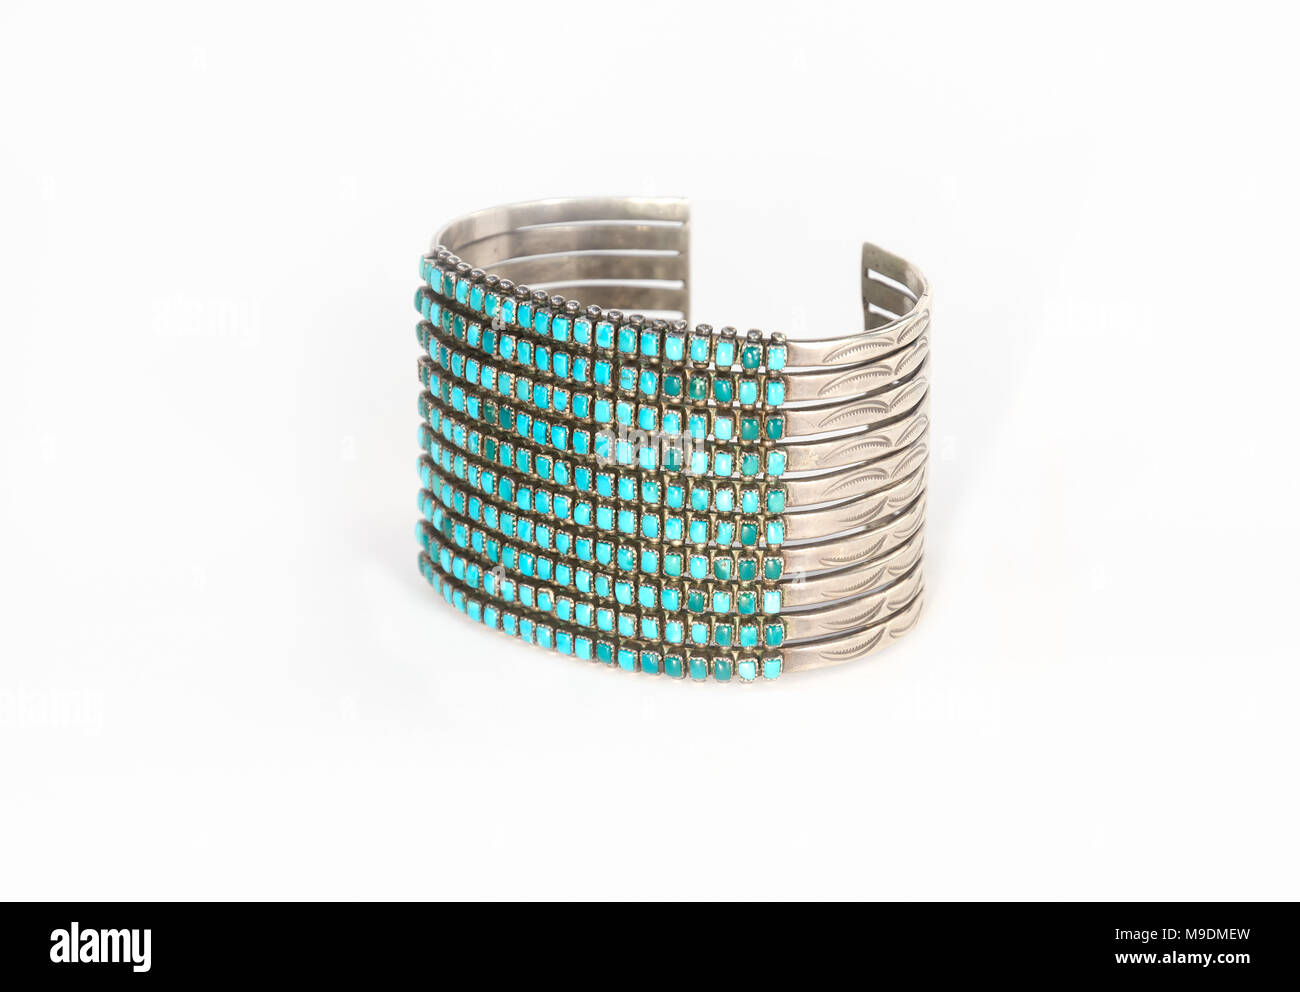 Native American Sterling Silver and Turquoise Cuff Bracelet Isolated on White. - Stock Image